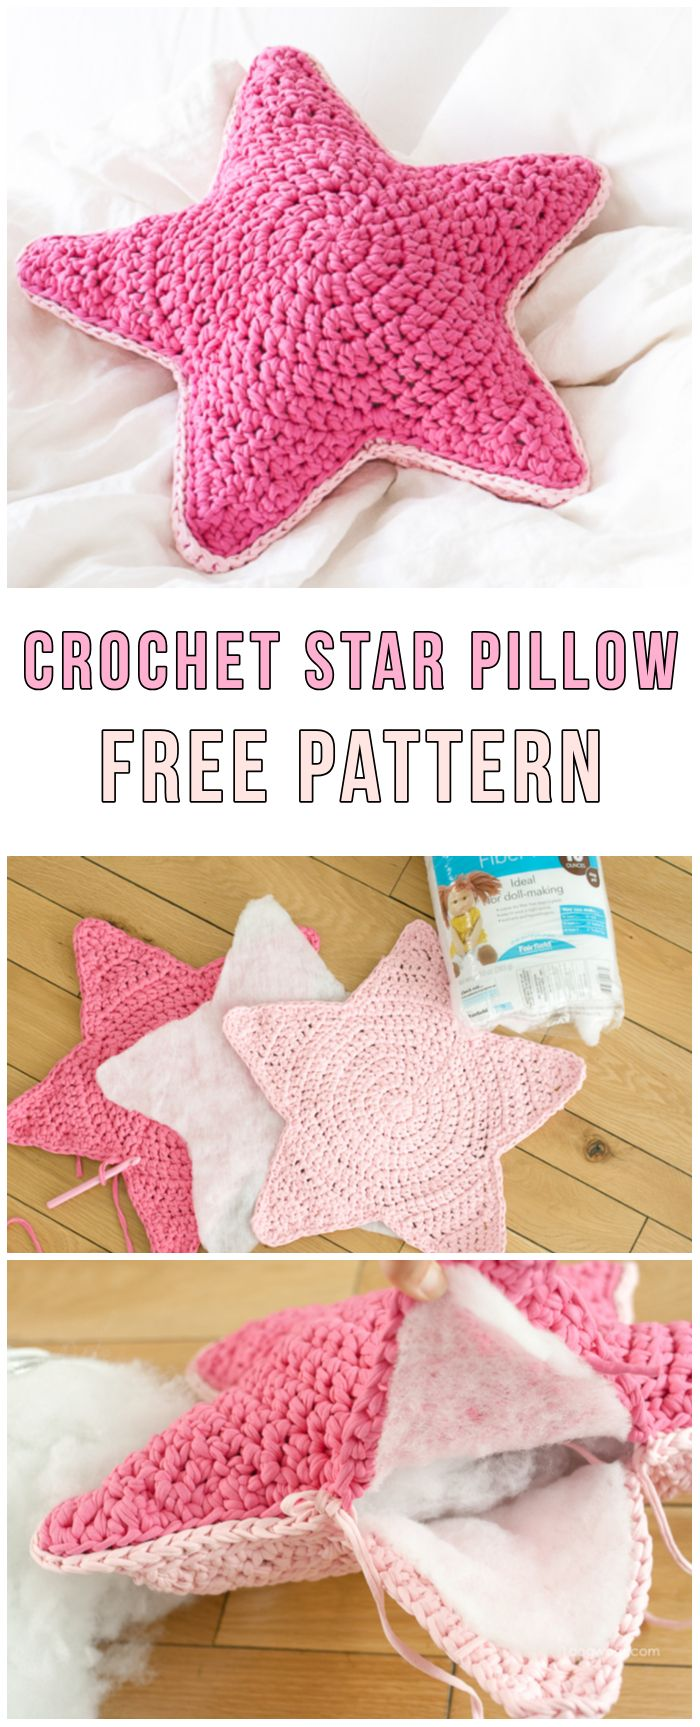 5 Diy Projects For Crochet Pillows Cushions With Free Patterns